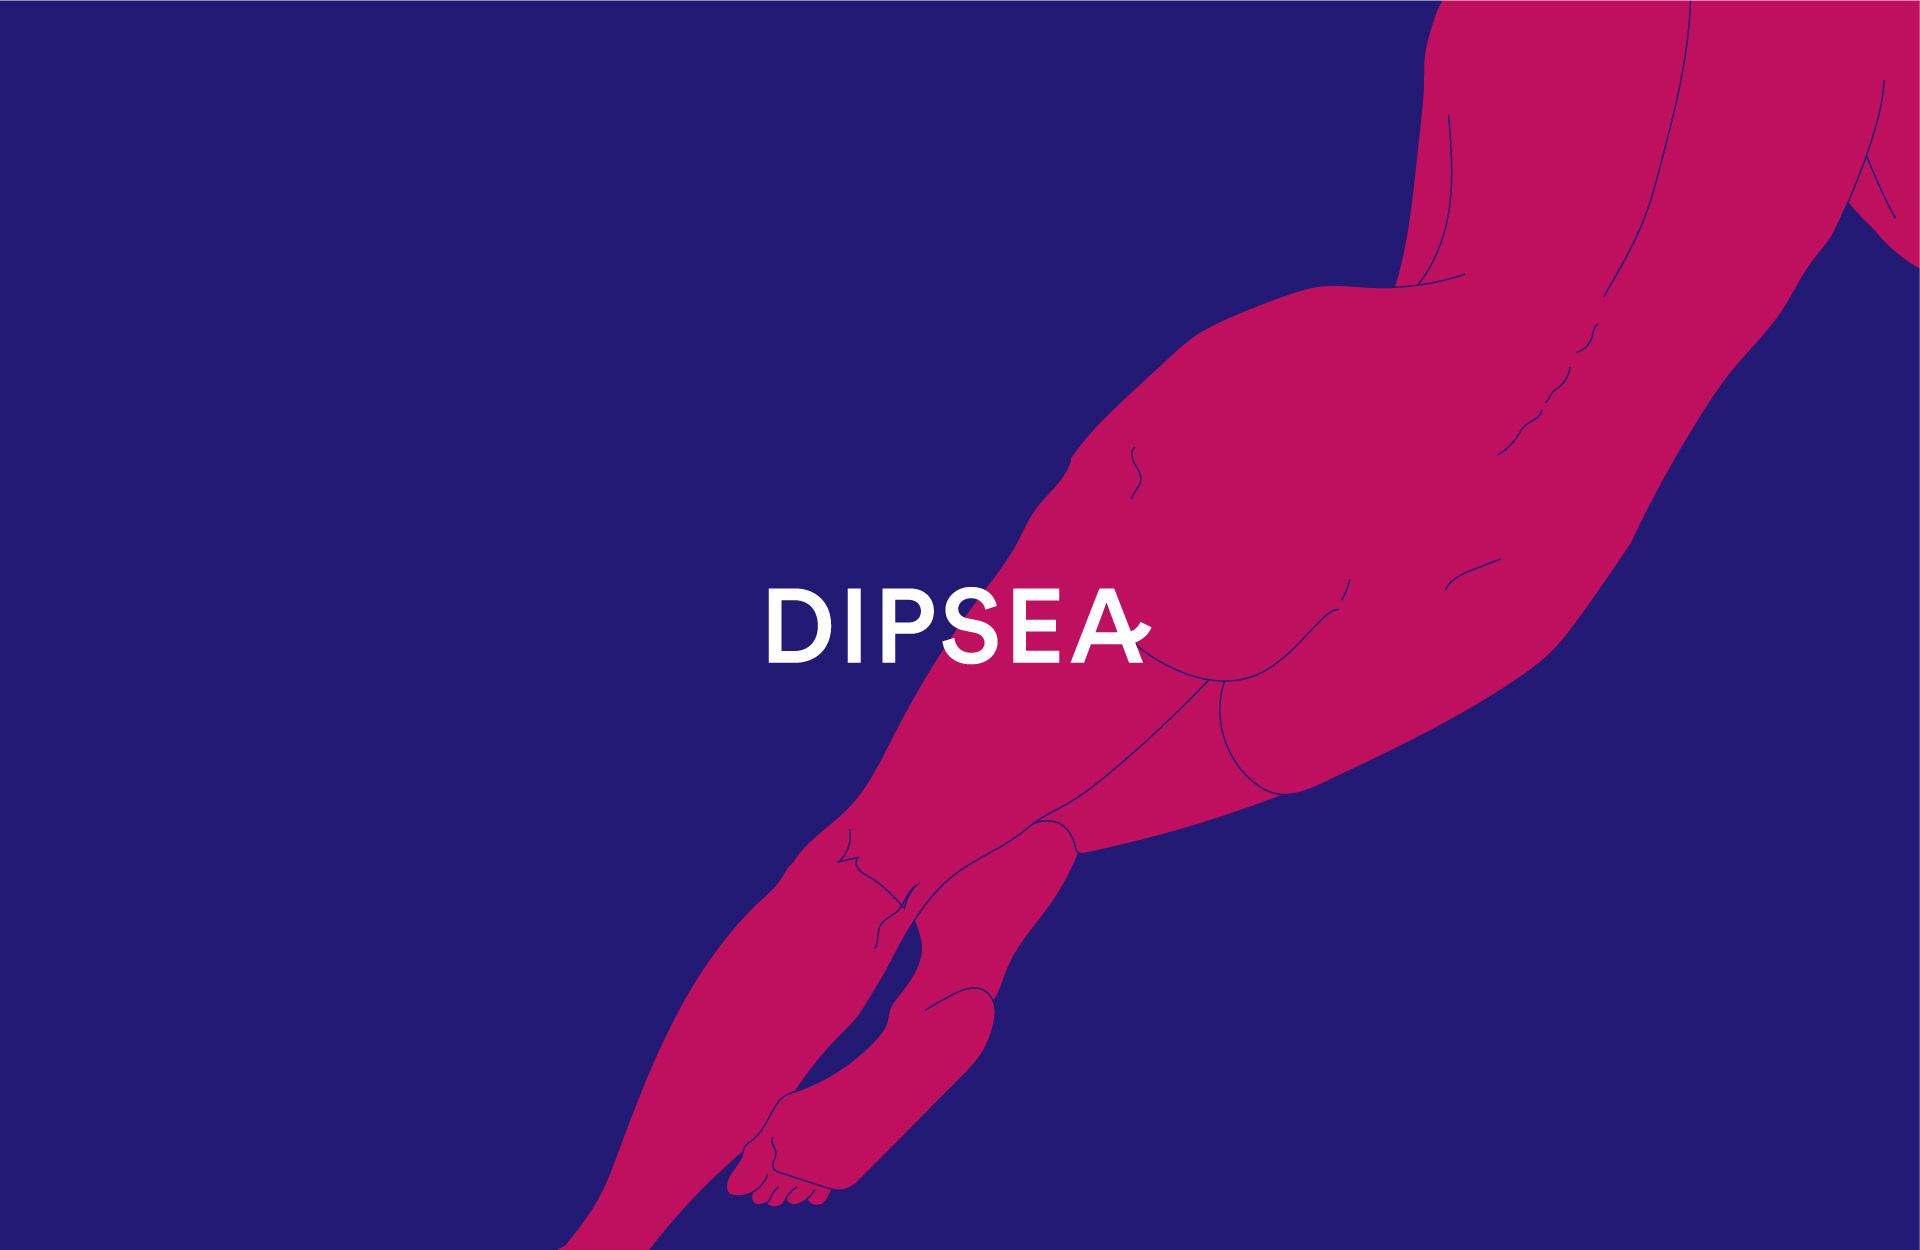 02_Dipsea_Logo+Illustration.jpg